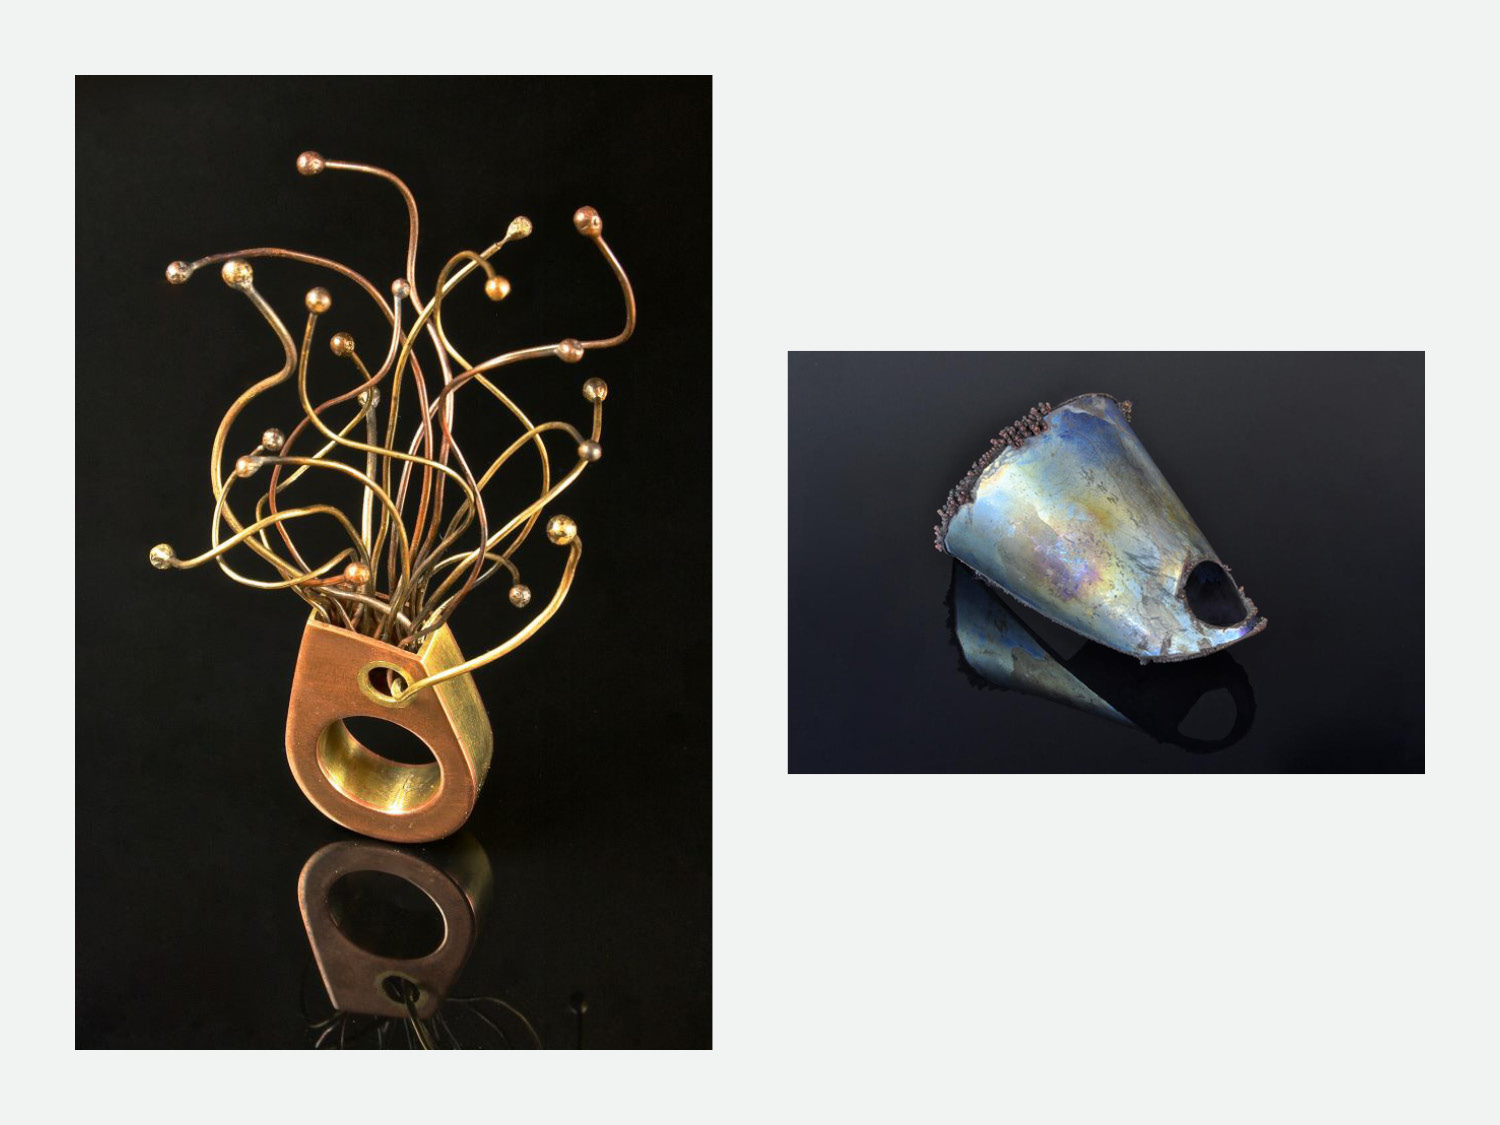 Left: Tabitha; brass and copper, hollow fabricated ring // Right: Electroformed titanium, decorative piece